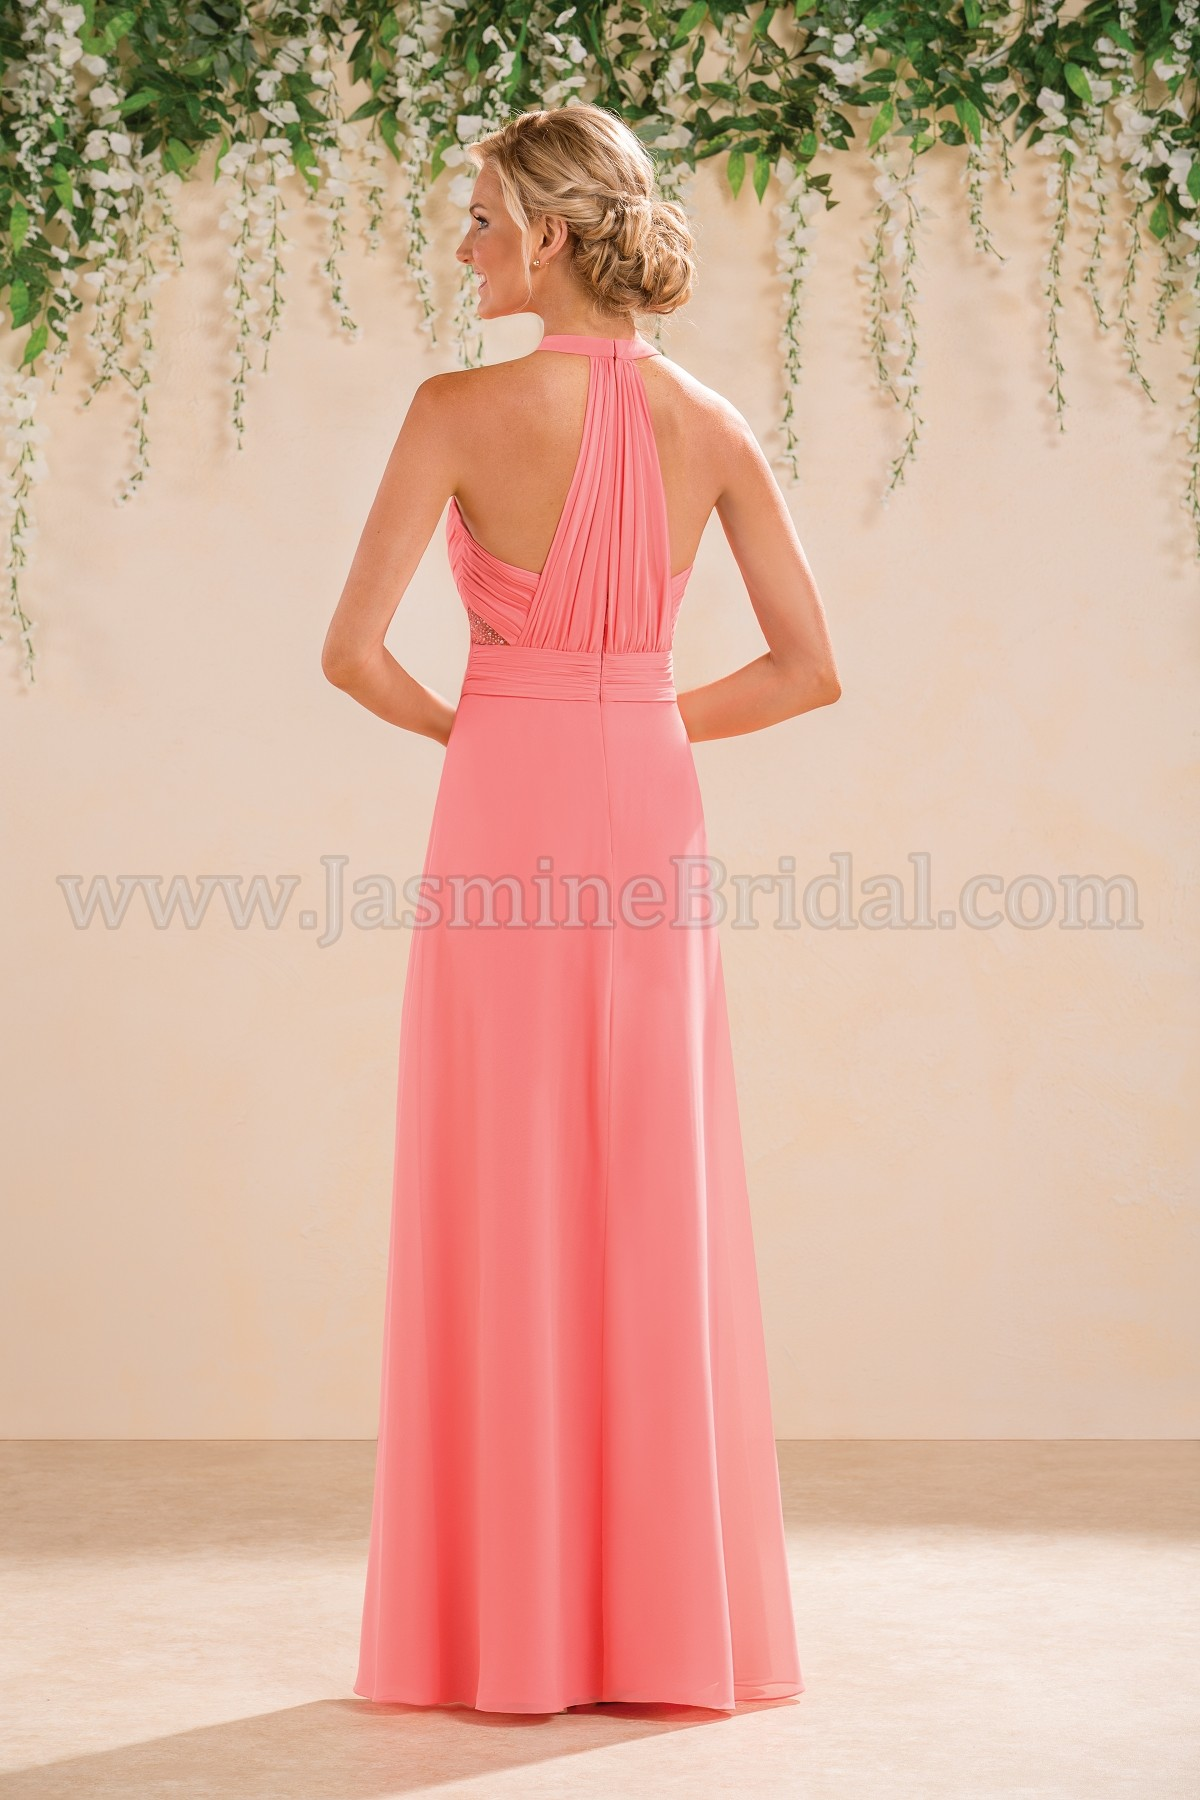 bridesmaid-dresses-B183008-B